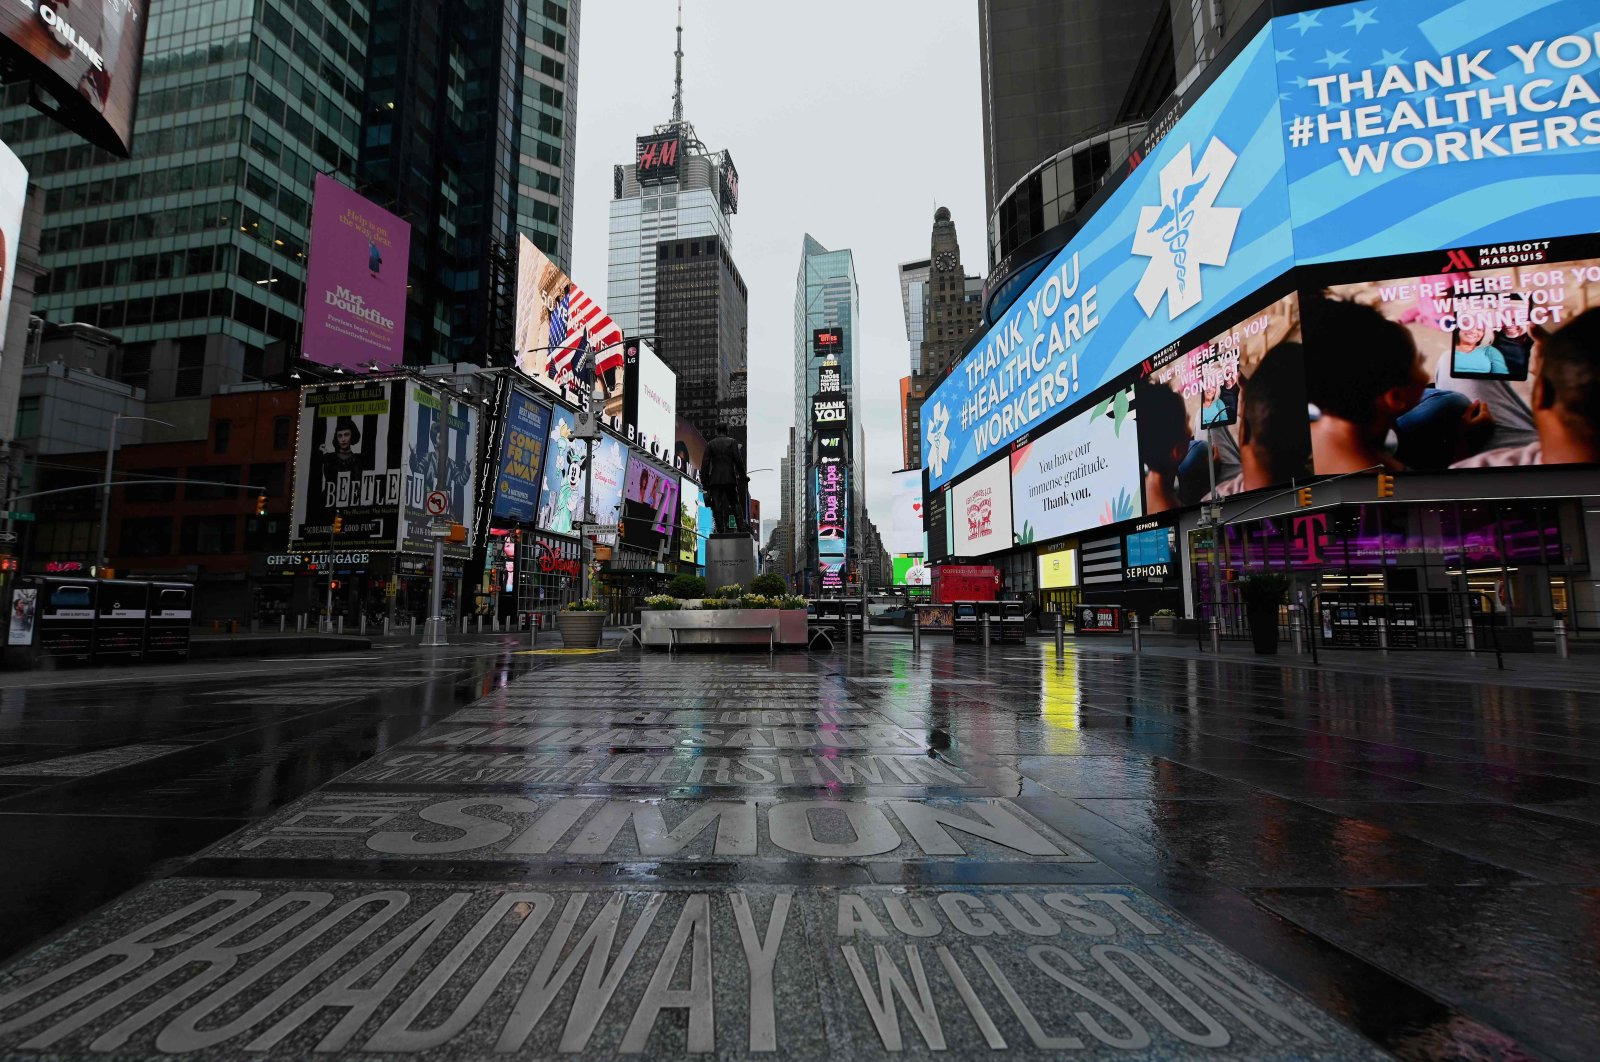 A view of a nearly empty Time Square on April 09, 2020 in New York City. (AFP Photo)